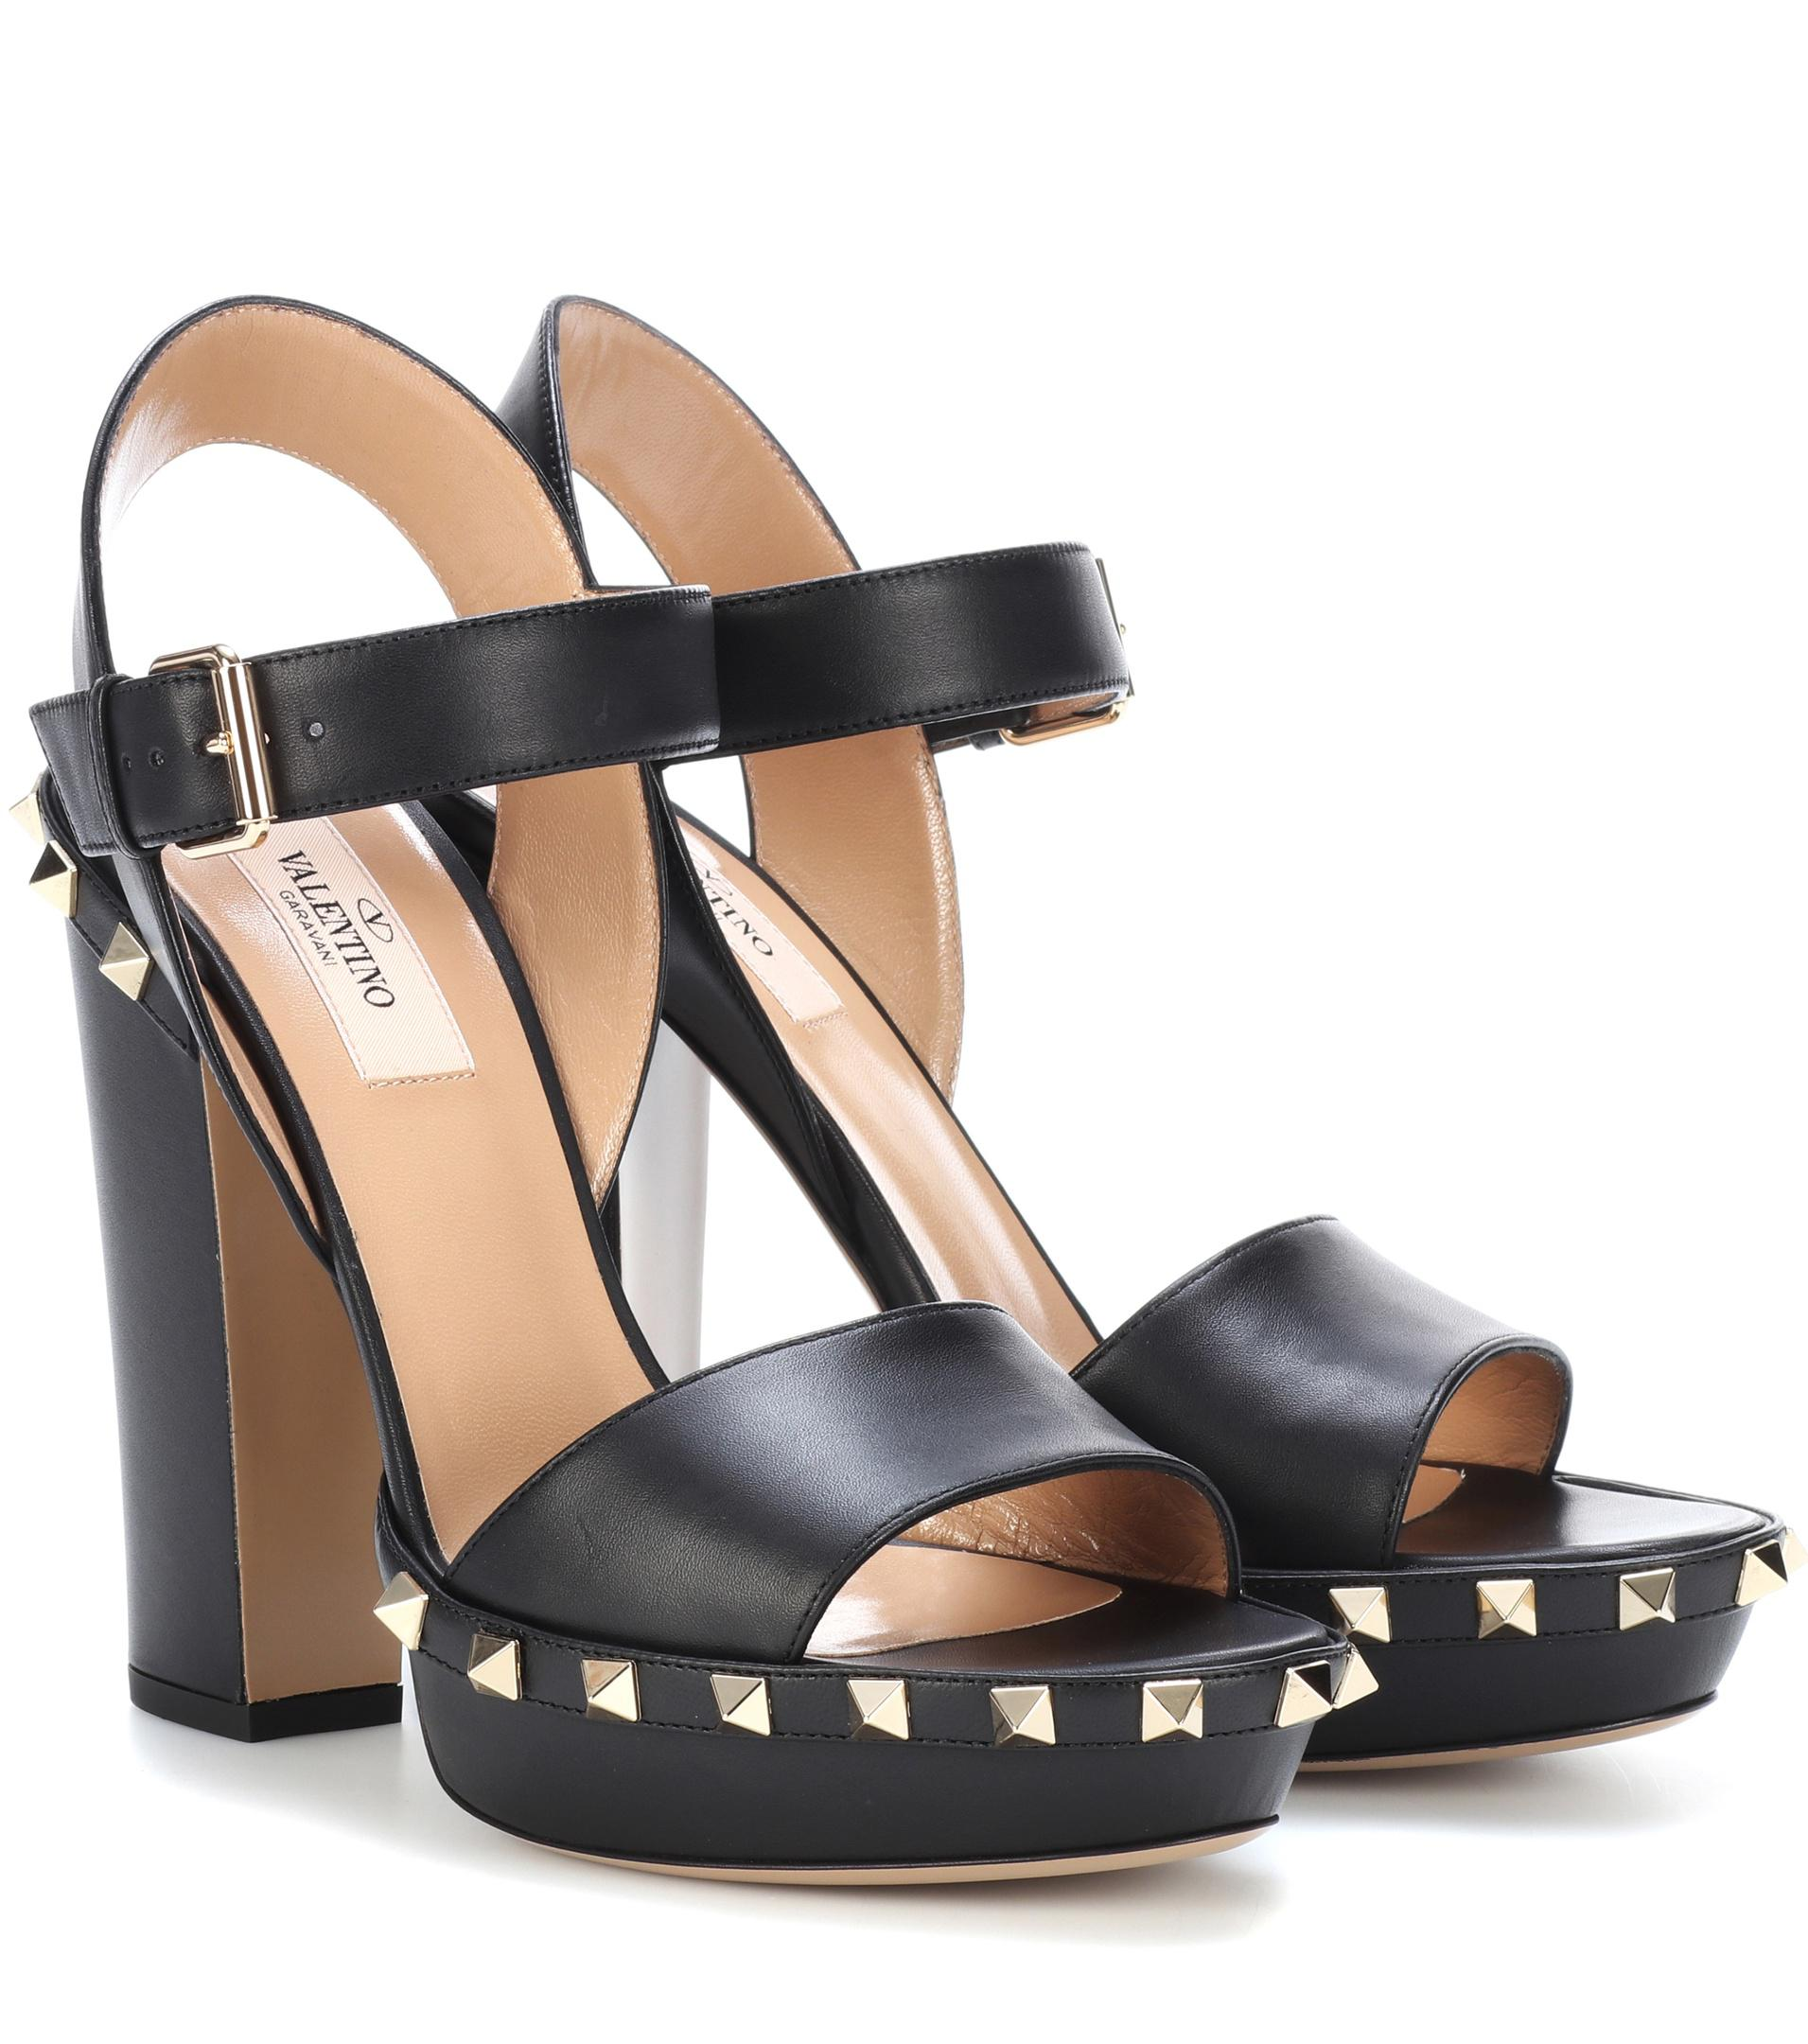 Valentino Garavani Rockstud leather plateau sandals